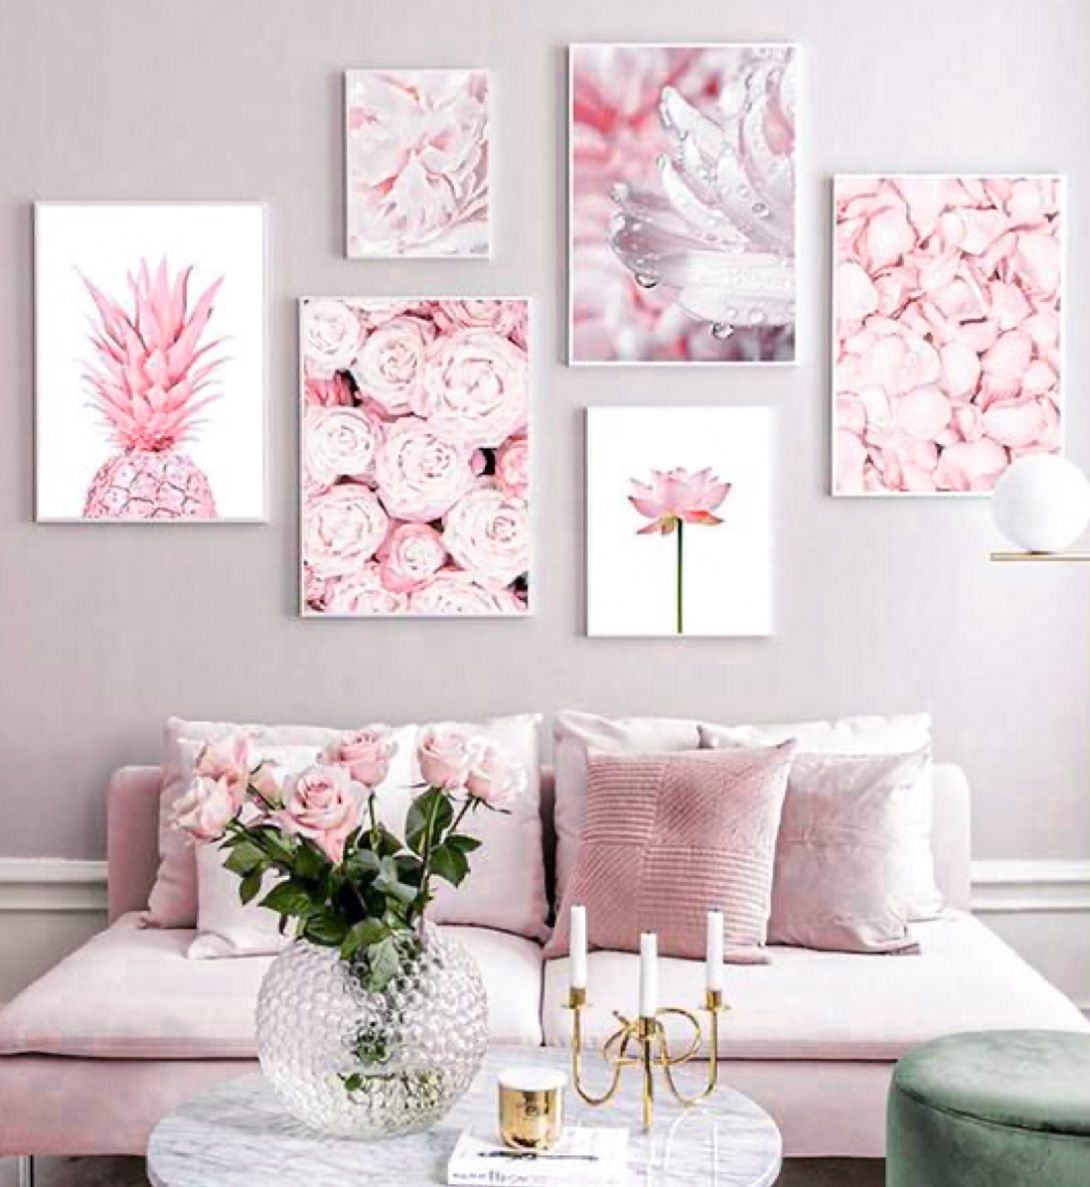 How To Add Pink Decor To Create A Chic Home Diy Darlin Pink Home Decor Wall Art Living Room Pink Decor